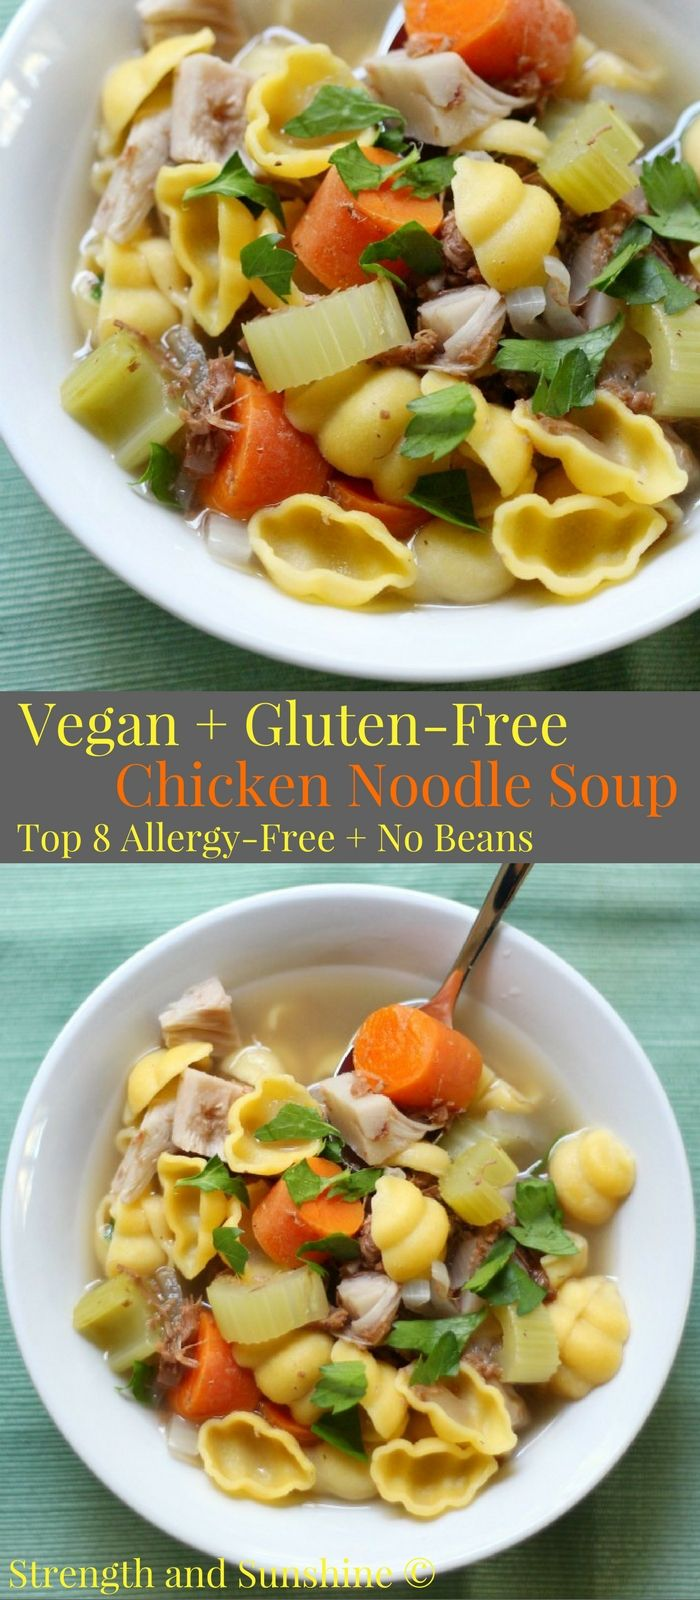 Vegan + Gluten-Free Chicken Noodle Soup (Allergy-Free, No Beans) | Strength and Sunshine @RebeccaGF666 Everyone loves a piping hot comforting bowl of classic chicken noodle soup! But this healthy & veggie-packed recipe is for Vegan & Gluten-Free Chicken Noodle Soup; top 8 allergy-free, no beans, and a mock ingredient you'd never guess! This cozy soup will nourish and soothe the soul! #soup #chickennoodlesoup #chickensoup #glutenfree #vegan #allergyfree #jackfruit